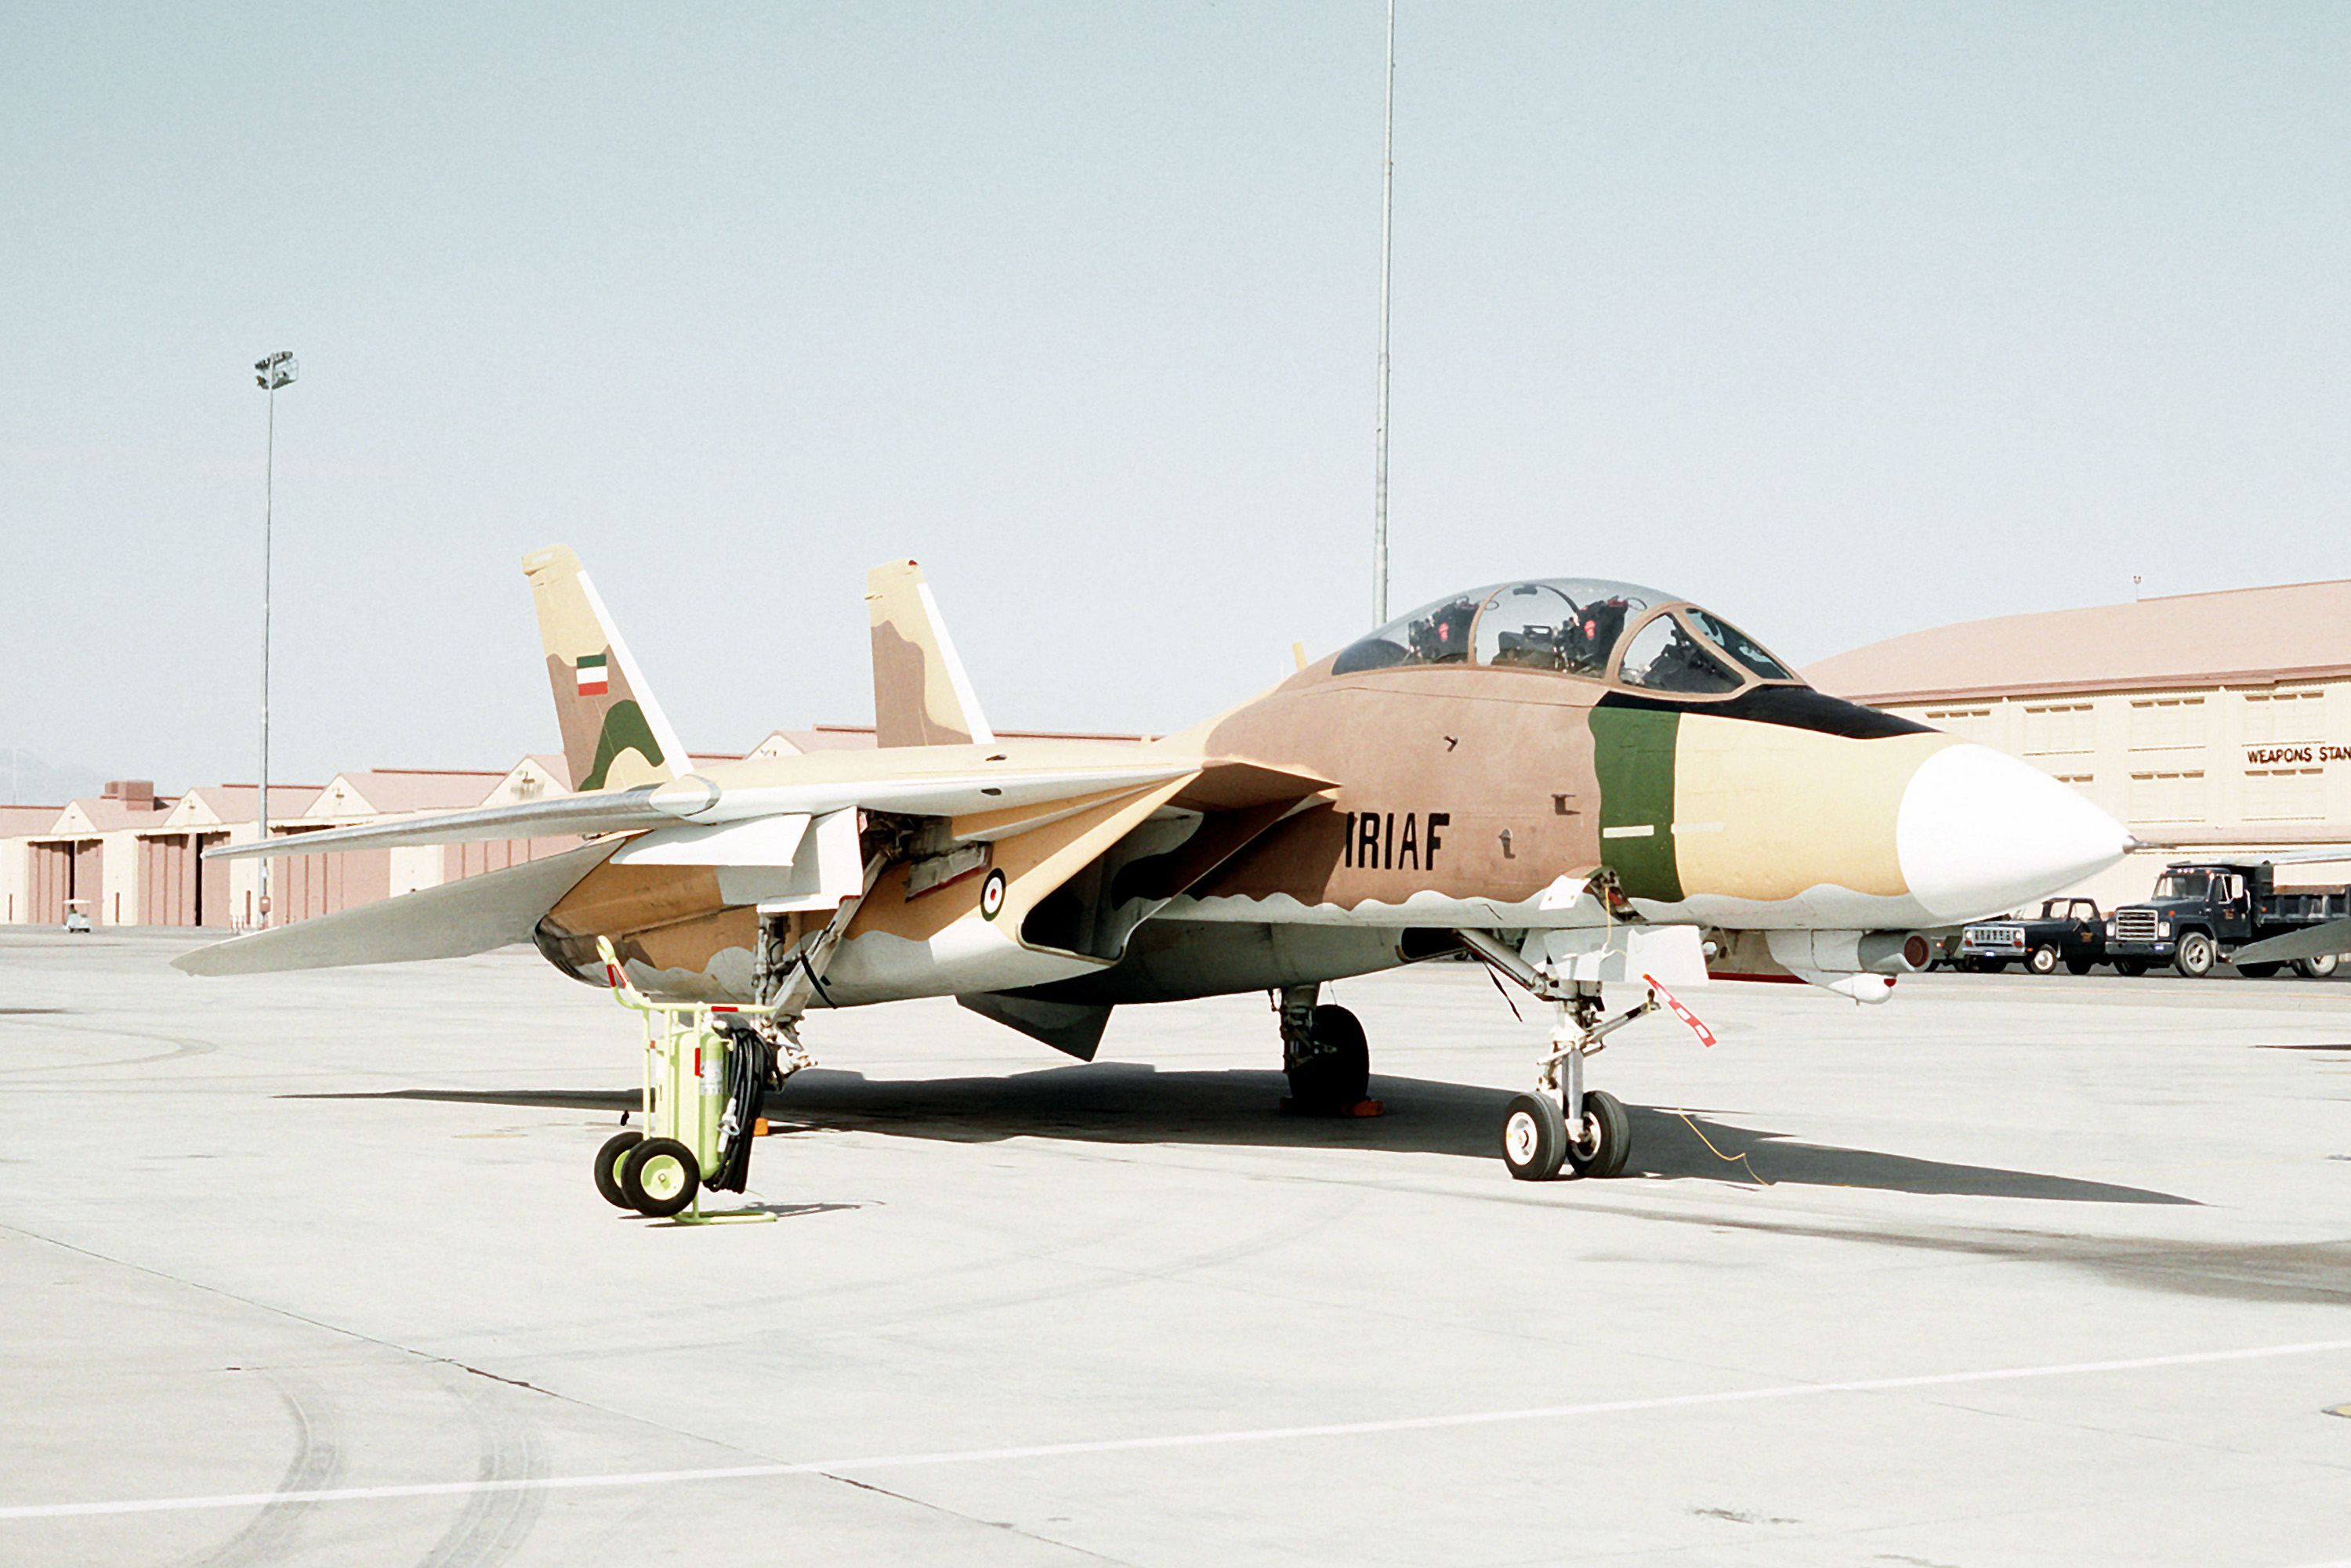 http://upload.wikimedia.org/wikipedia/commons/1/13/US_F-14_painted_like_an_Iranian_fighter.jpg